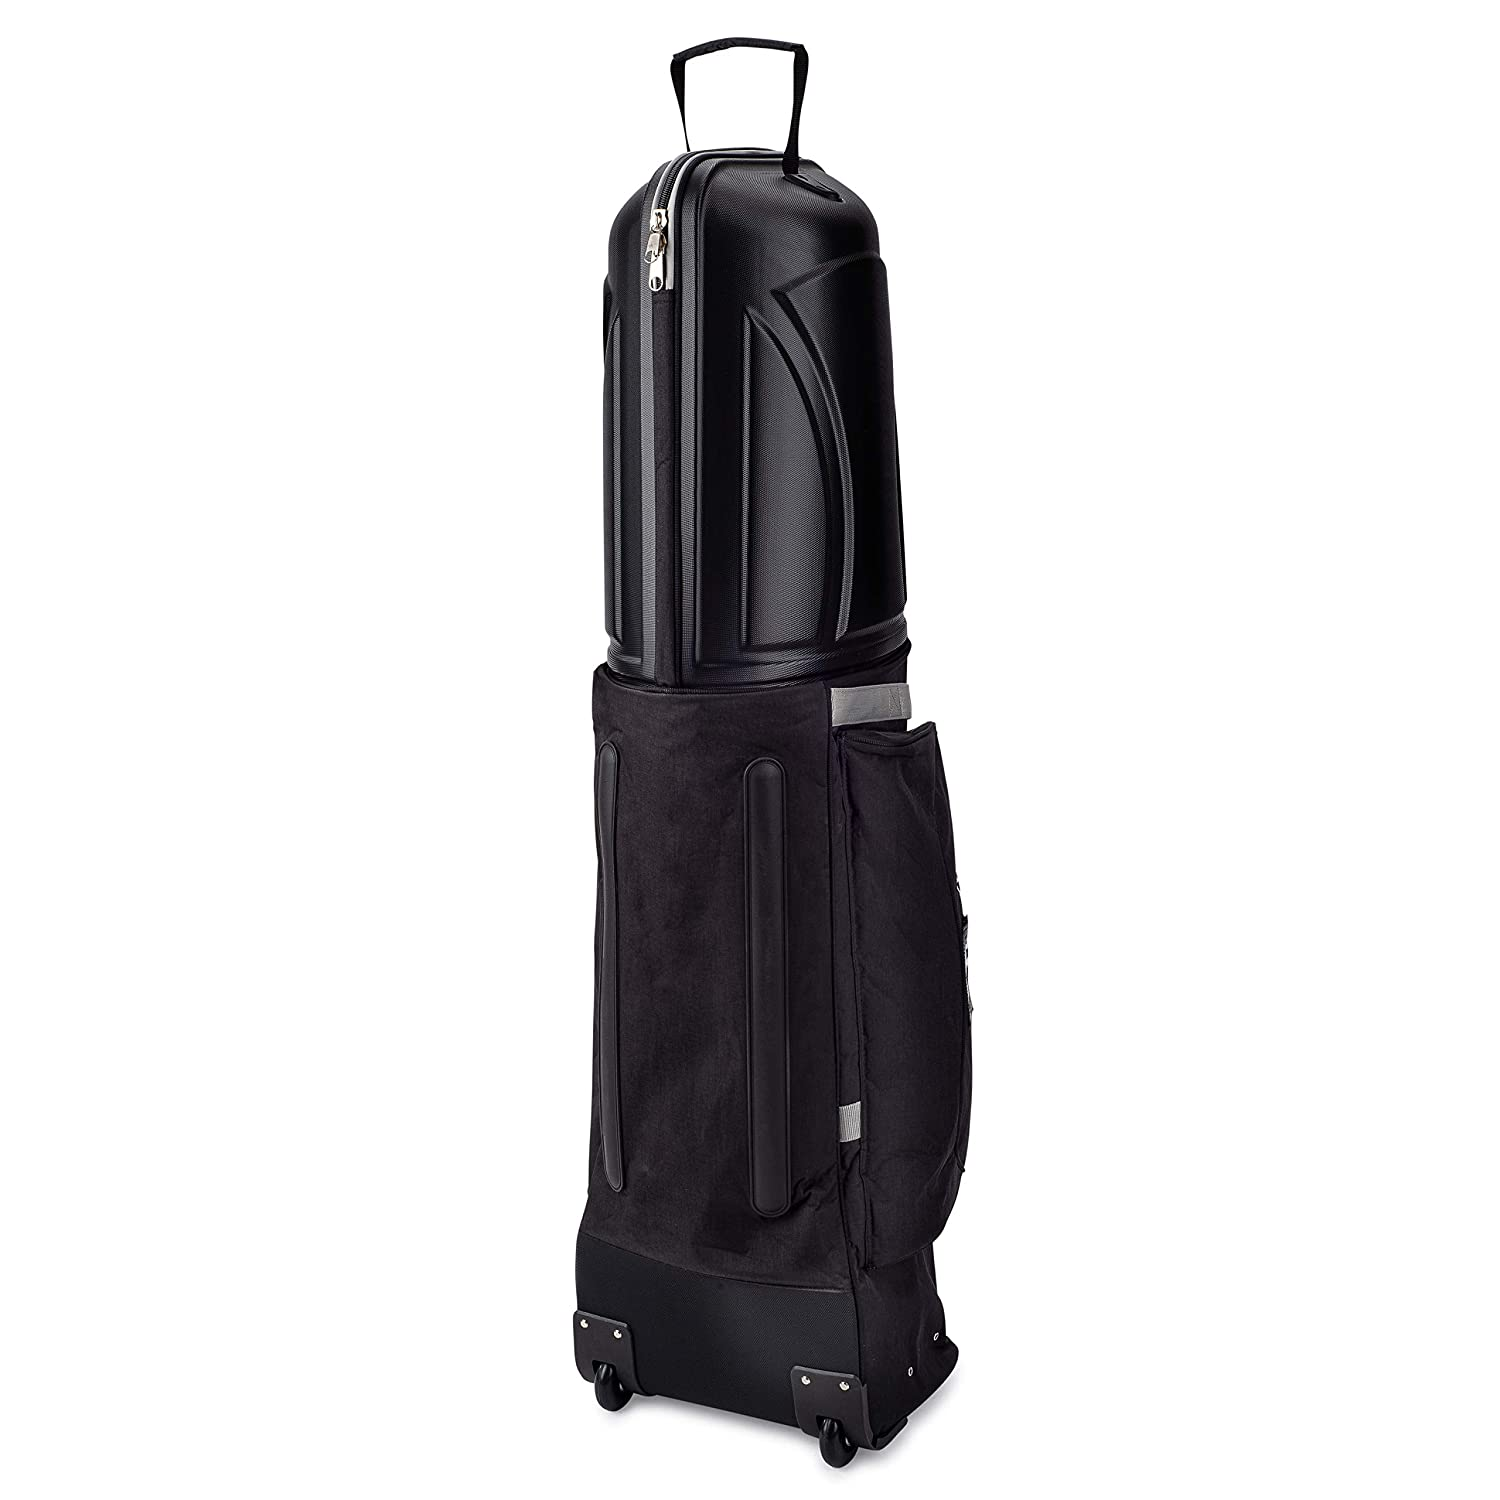 Founders Club Golf Travel Cover Luggage for Golf Clubs with ABS Hard Shell Top Travel Bag